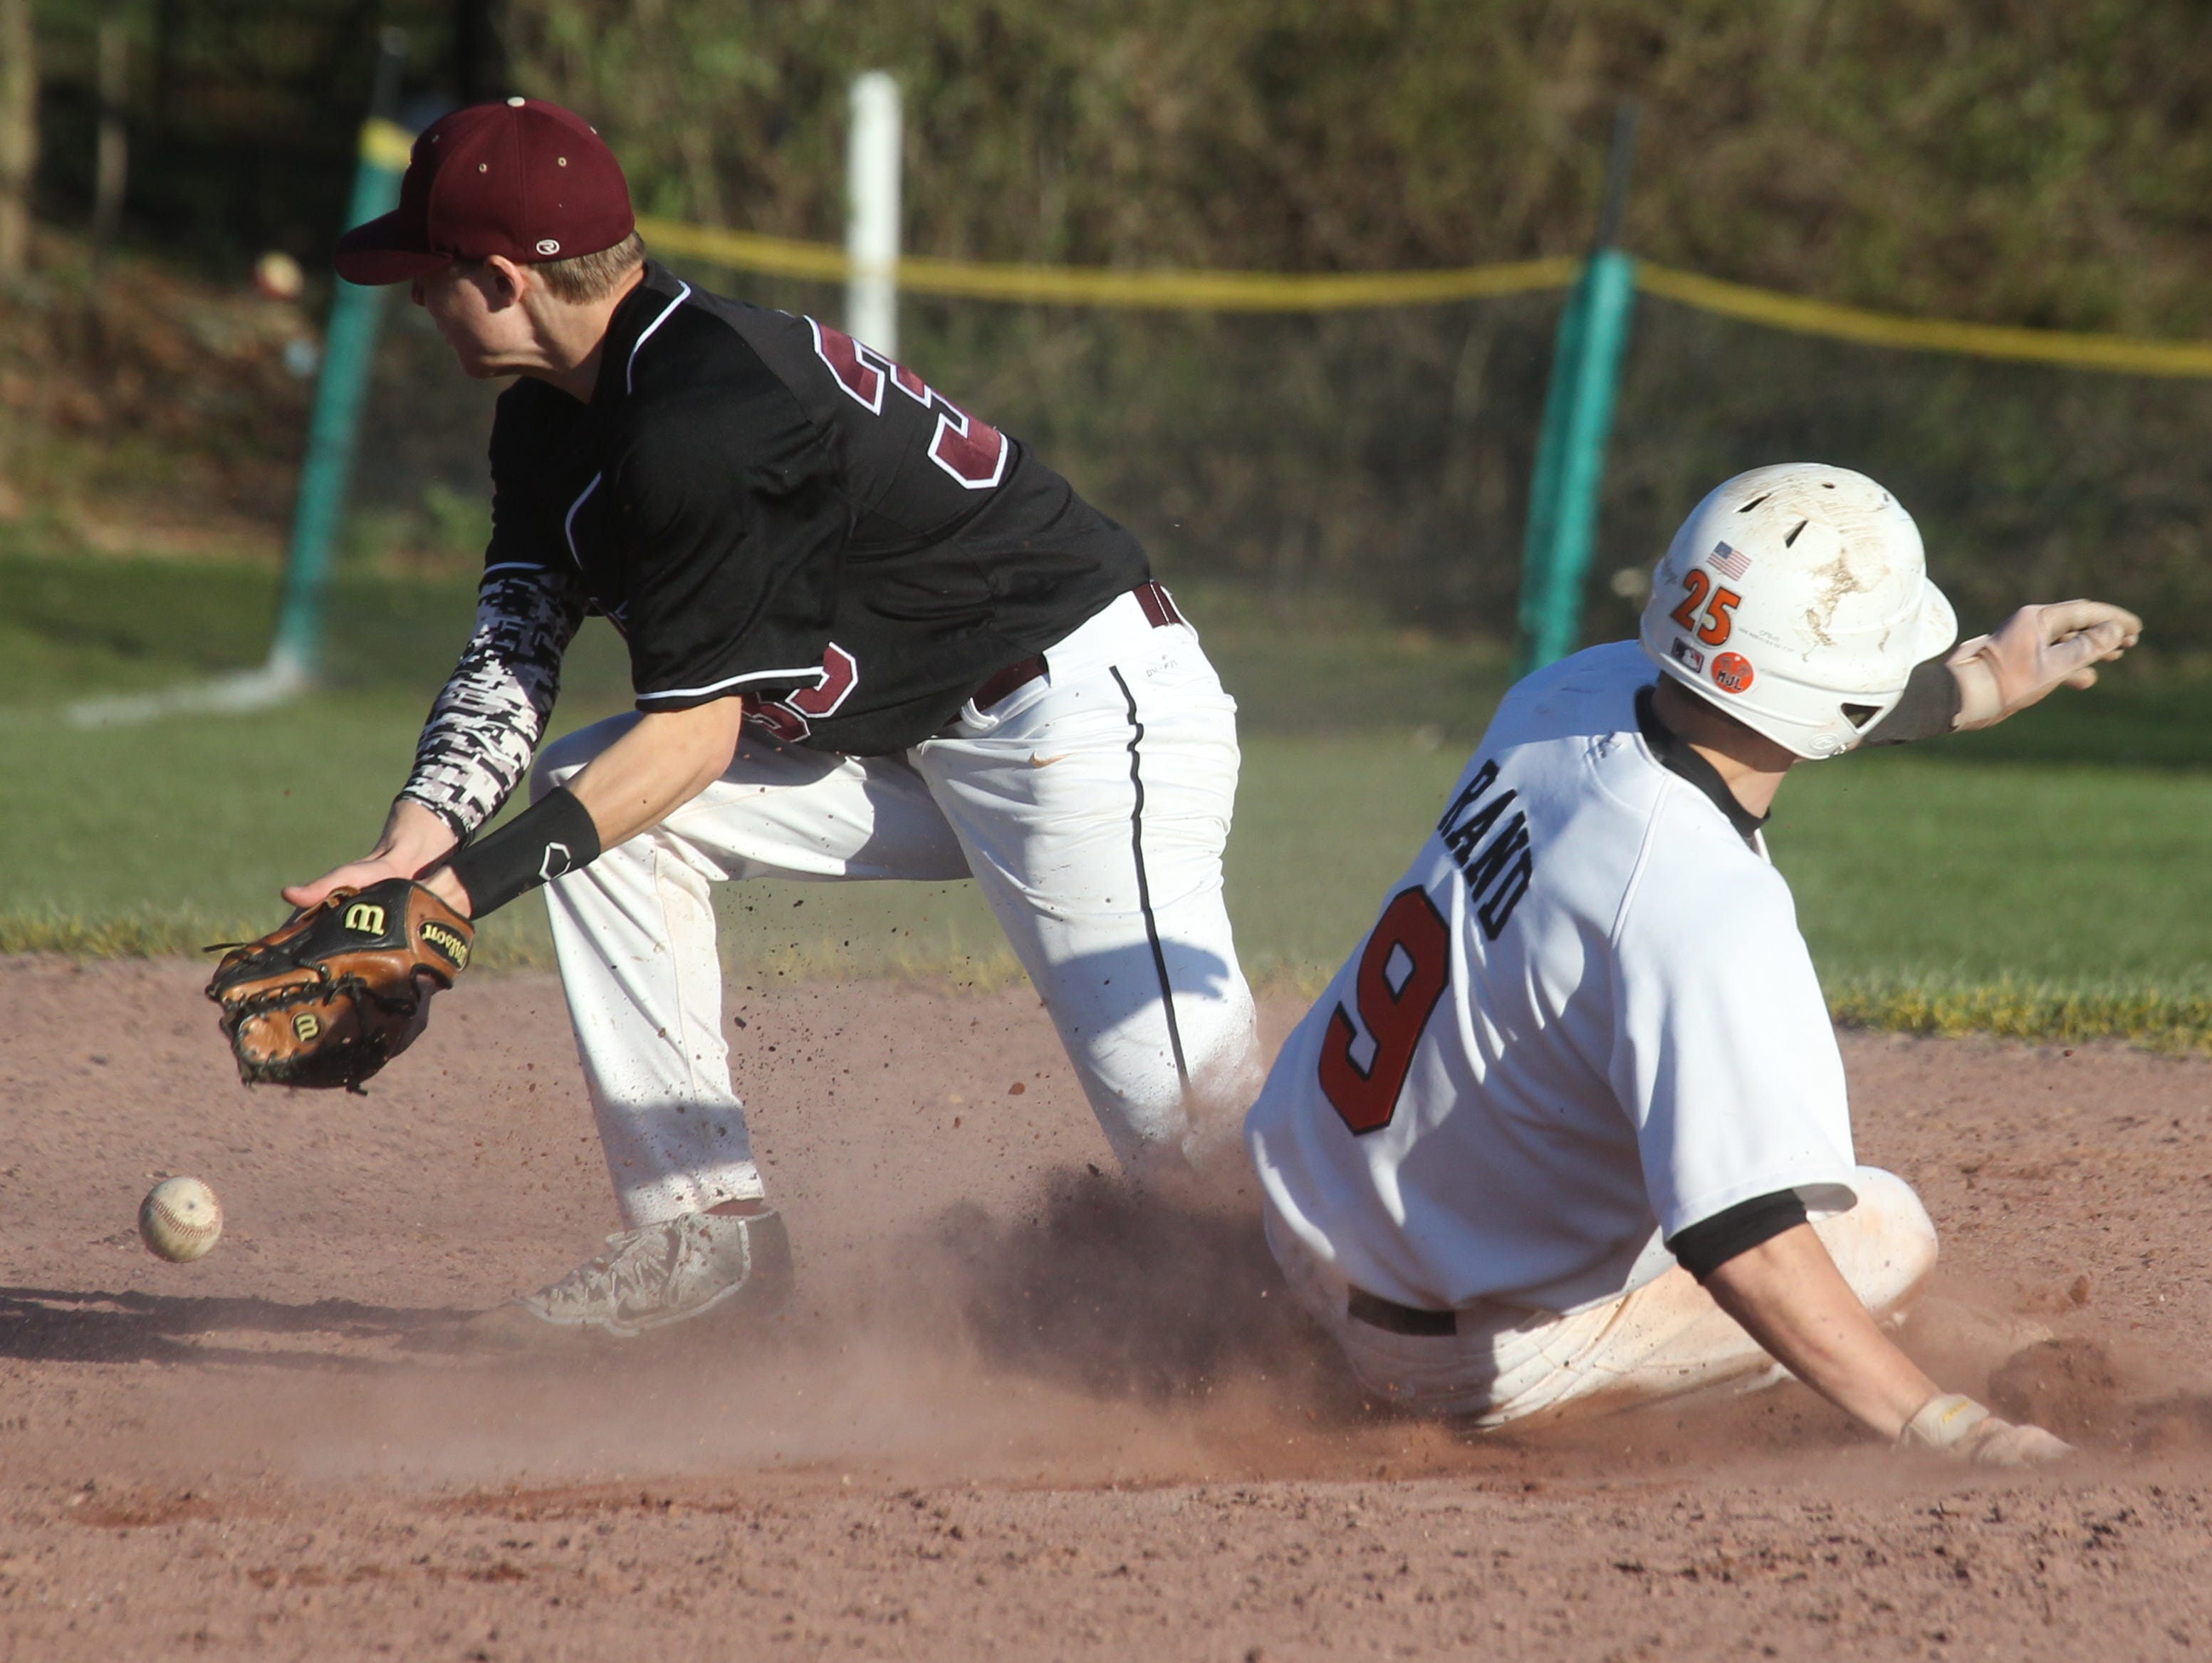 White Plains' Steven Rand steals second as the ball gets away from Scarsdale's Scott Kelly during their game at White Plains April 12, 2016. White Plains won 7-0.